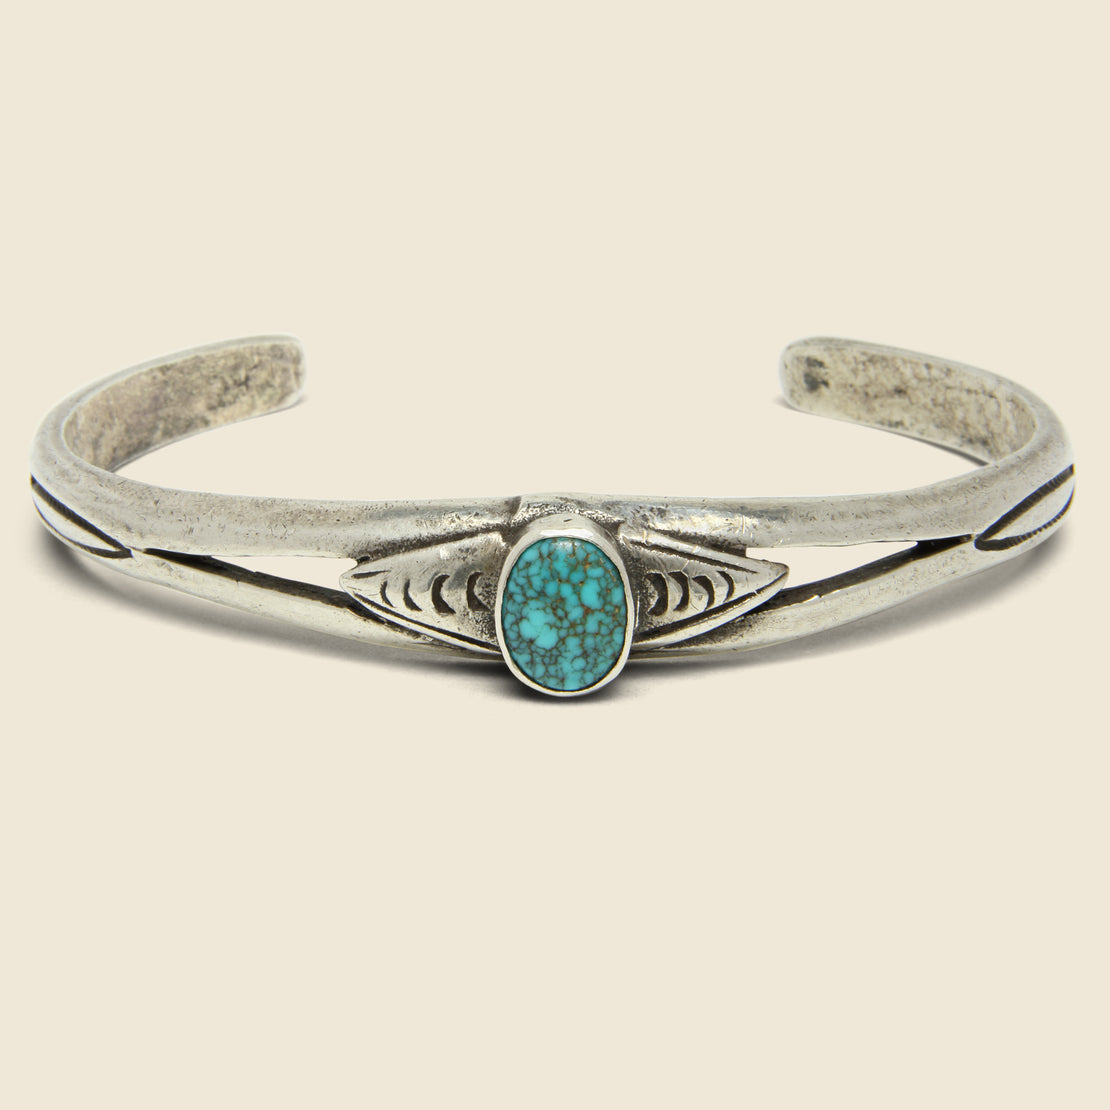 Vintage Oval Turquoise & Sterling Stamped Cuff - Silver/Turquoise